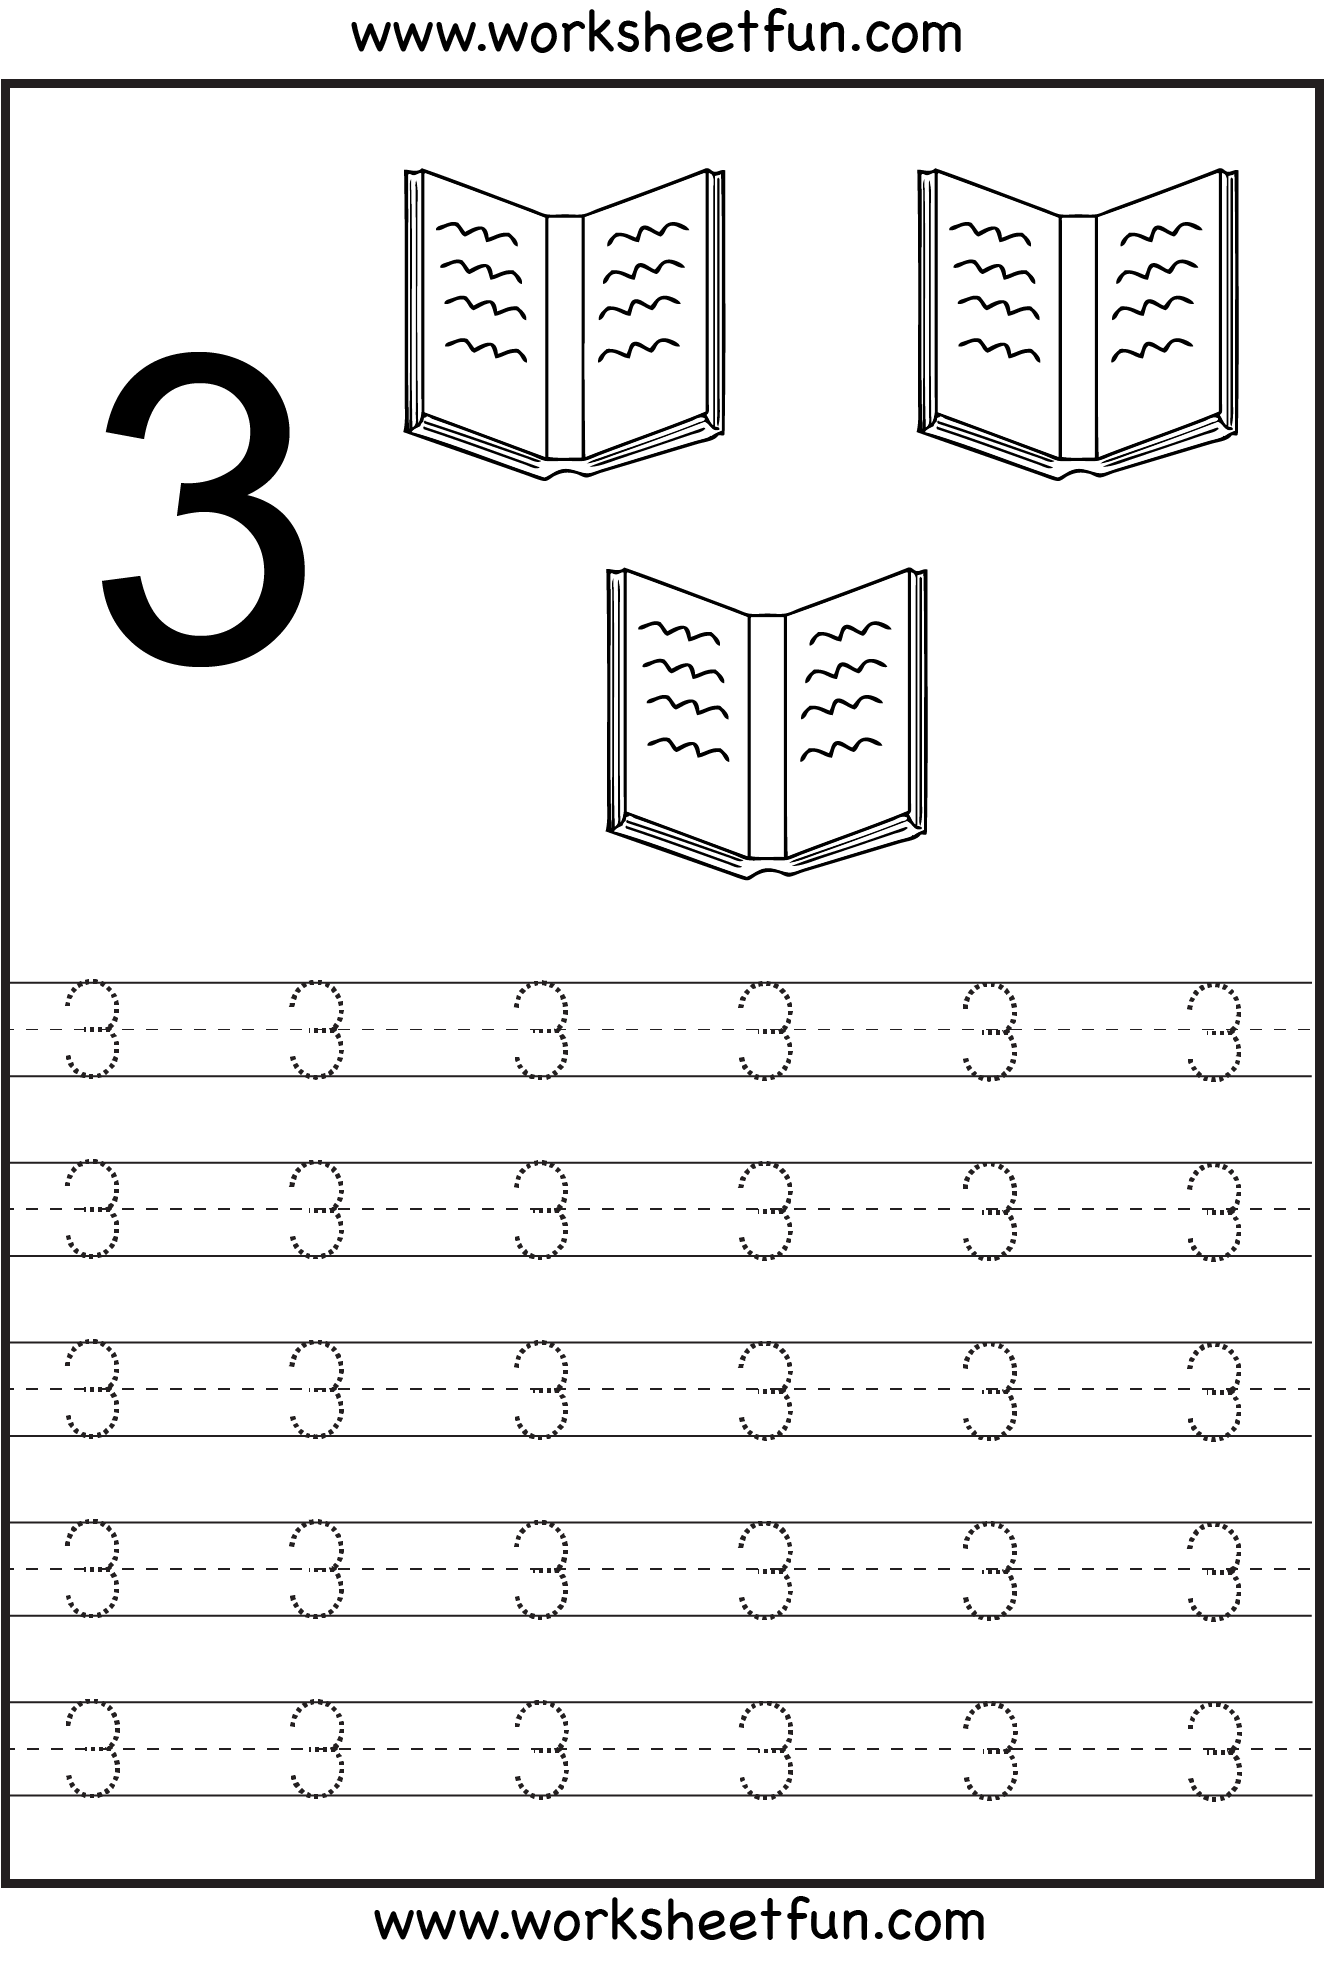 Worksheet Number Tracing Worksheets 1000 images about number worksheets on pinterest to work student and year 2